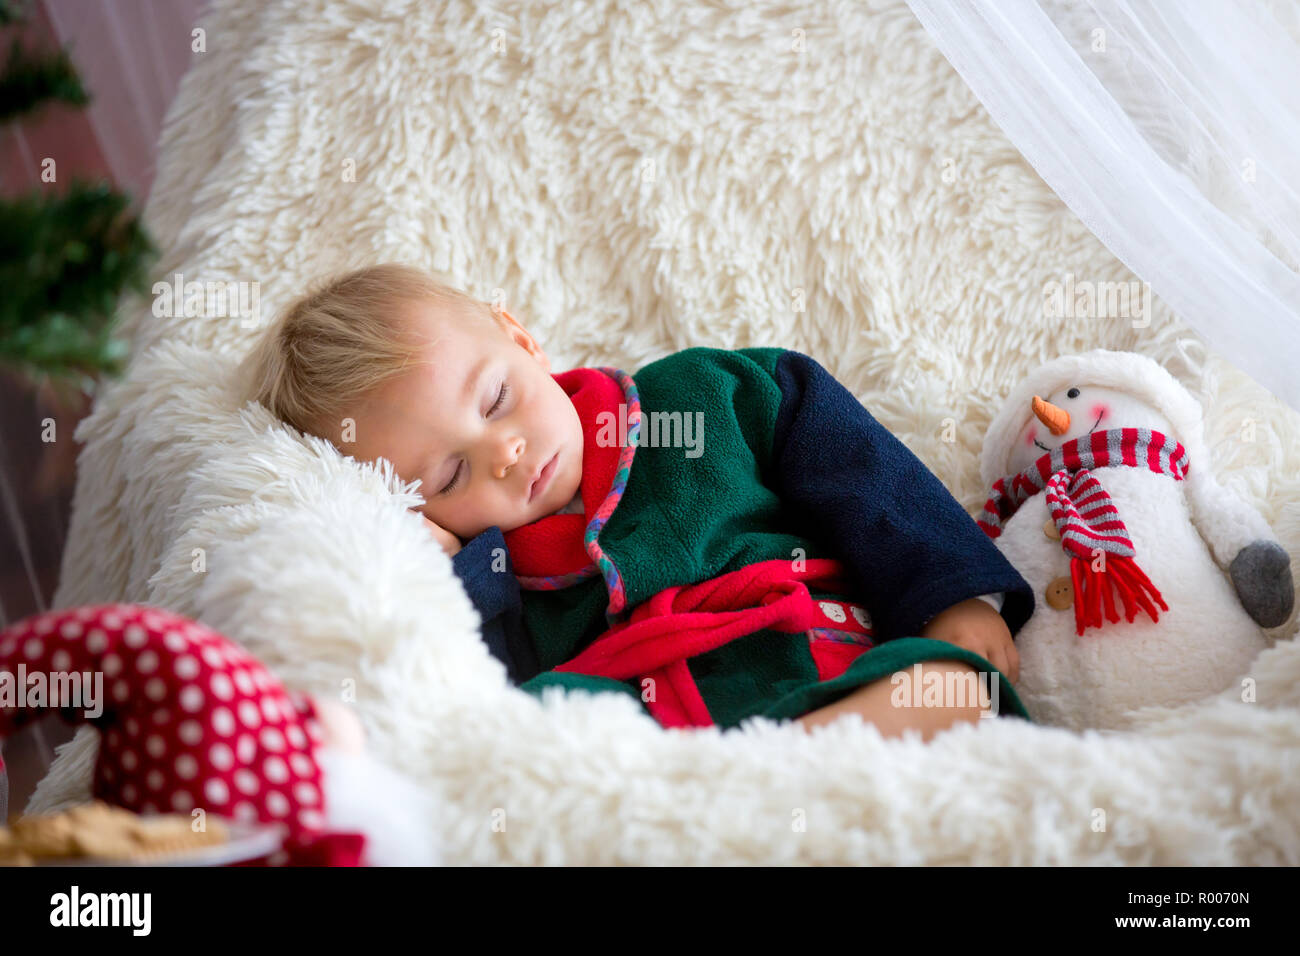 Astonishing Baby Boy Cute Child Wearing Santa Claus Robe Sitting In Creativecarmelina Interior Chair Design Creativecarmelinacom